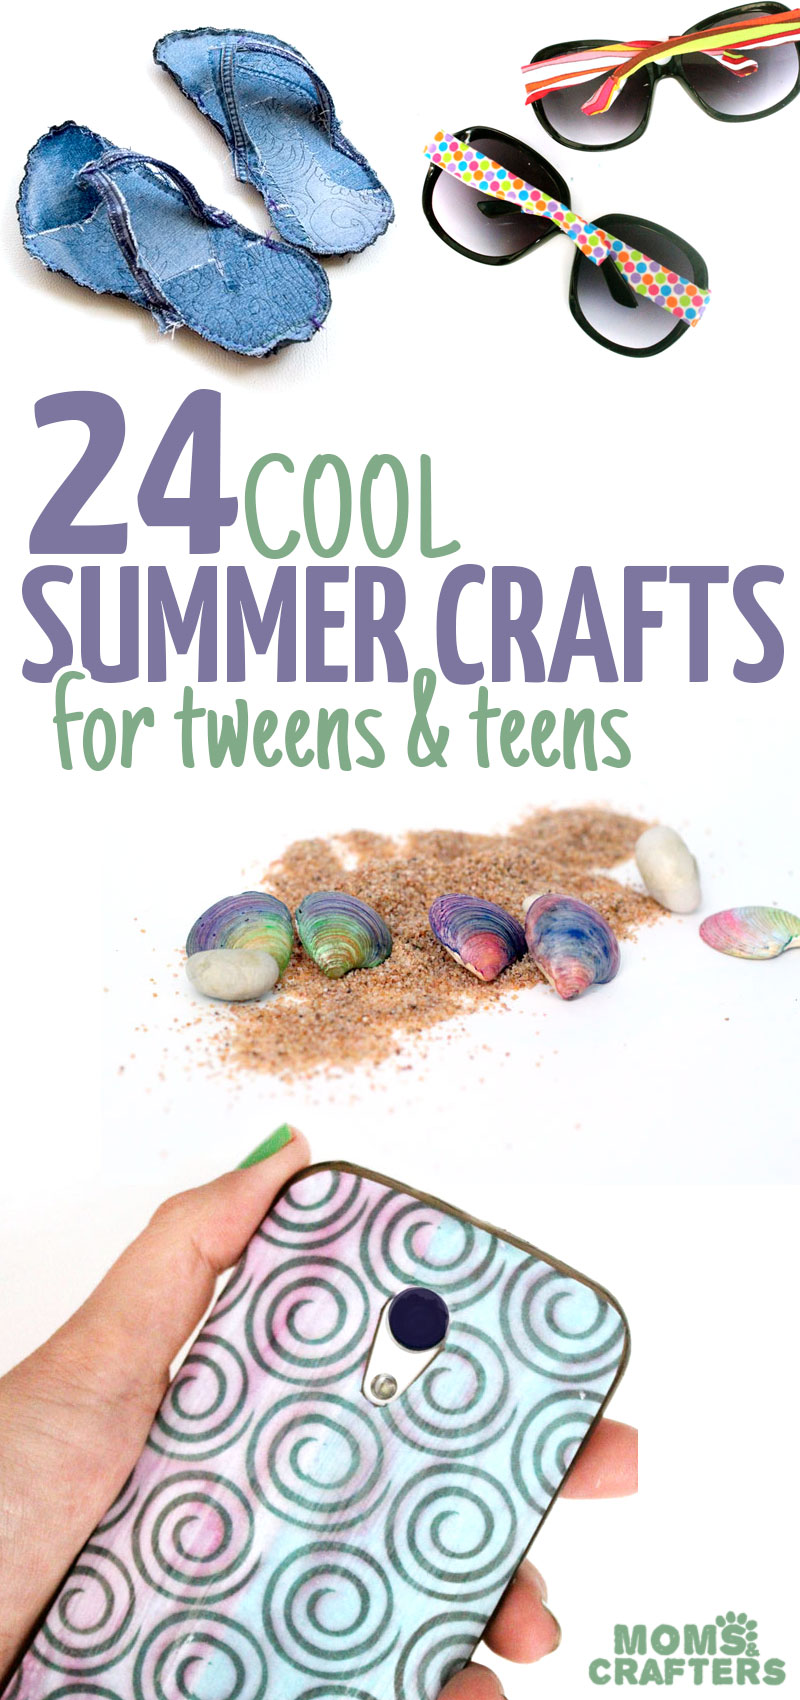 25 Cool summer crafts for teens and tweens are sure to keep them busy during these months! from DIY sunglaees, to flip flops and tees, these are all totally awesome!